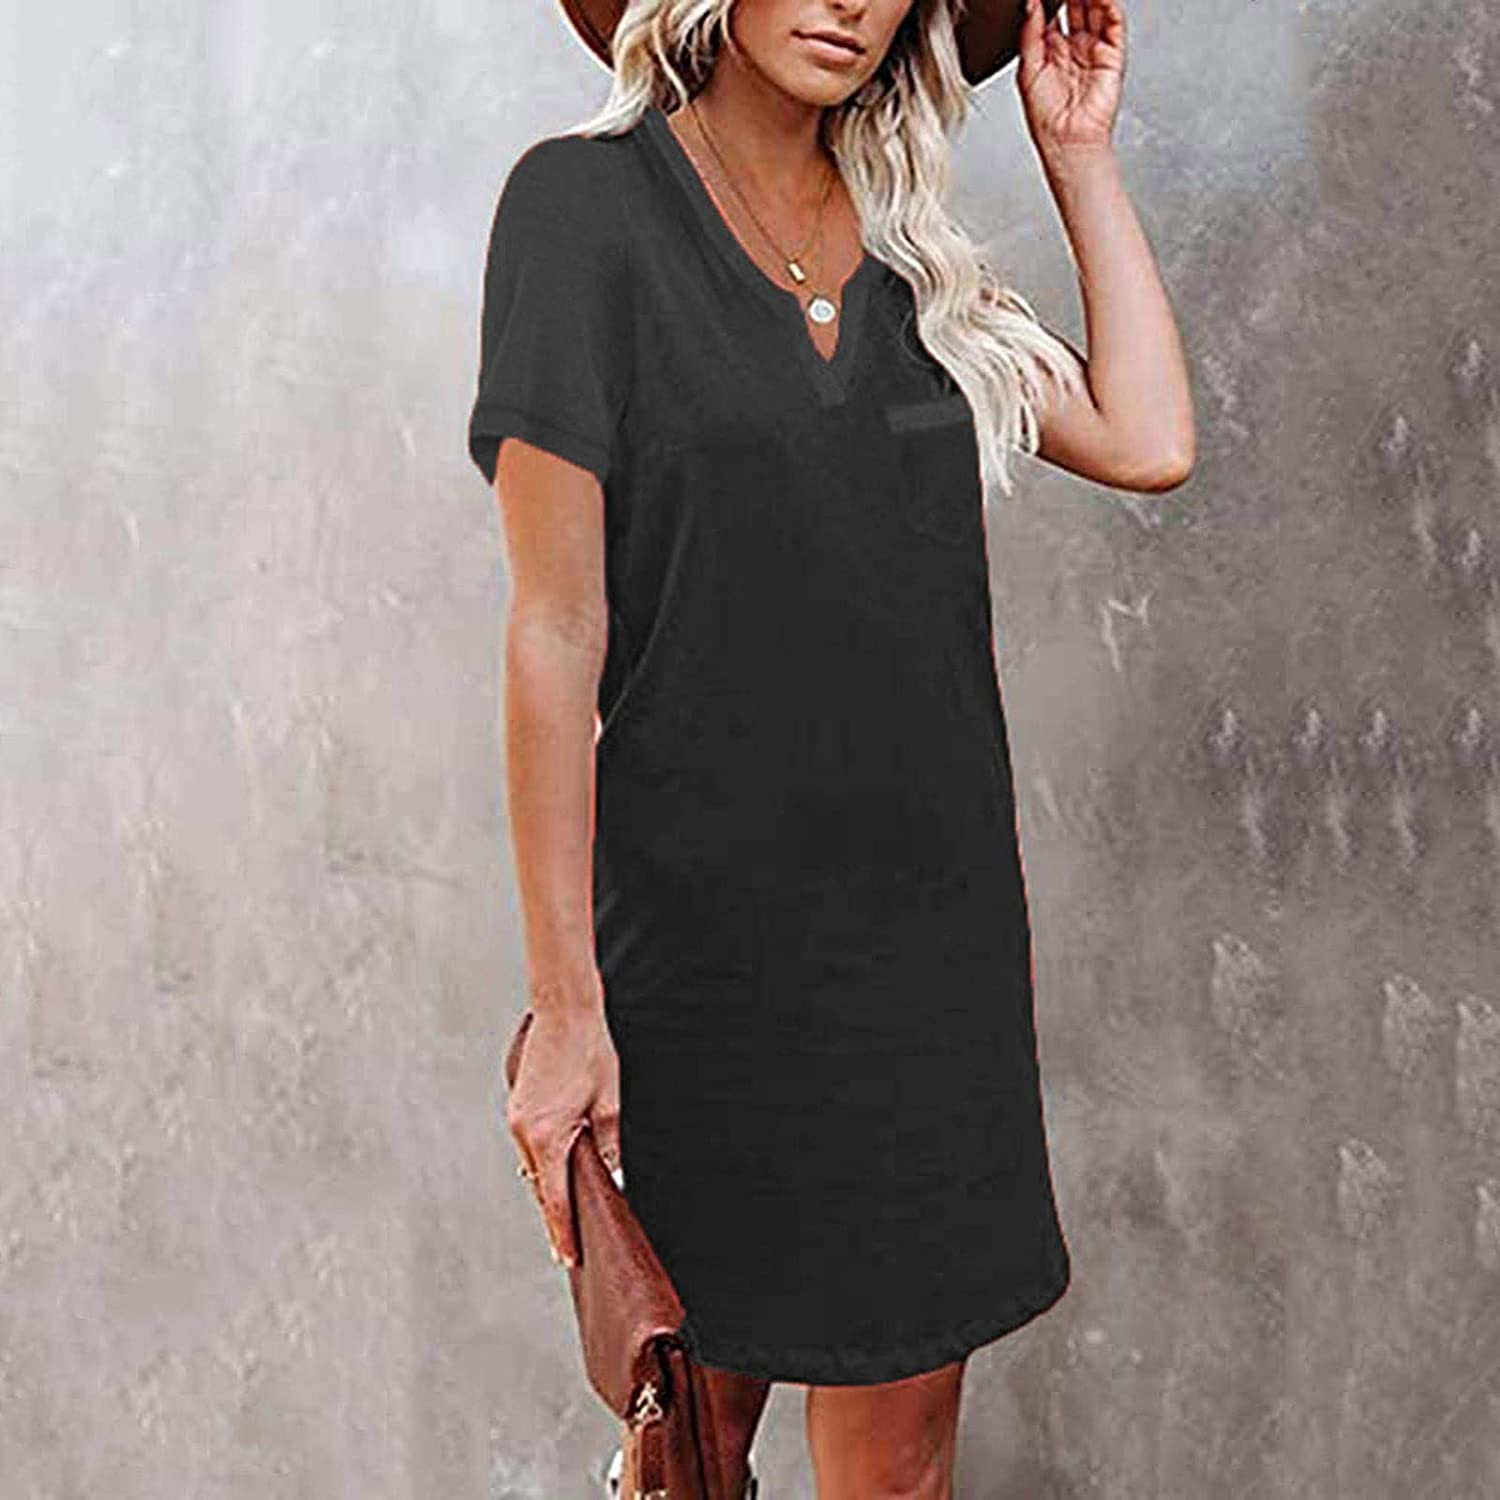 Kcocoo Women's Summer Casual Short Dress V Neck Solid Short Sleeve Sundress With Pockets Wear to Work Party Pencil Dress